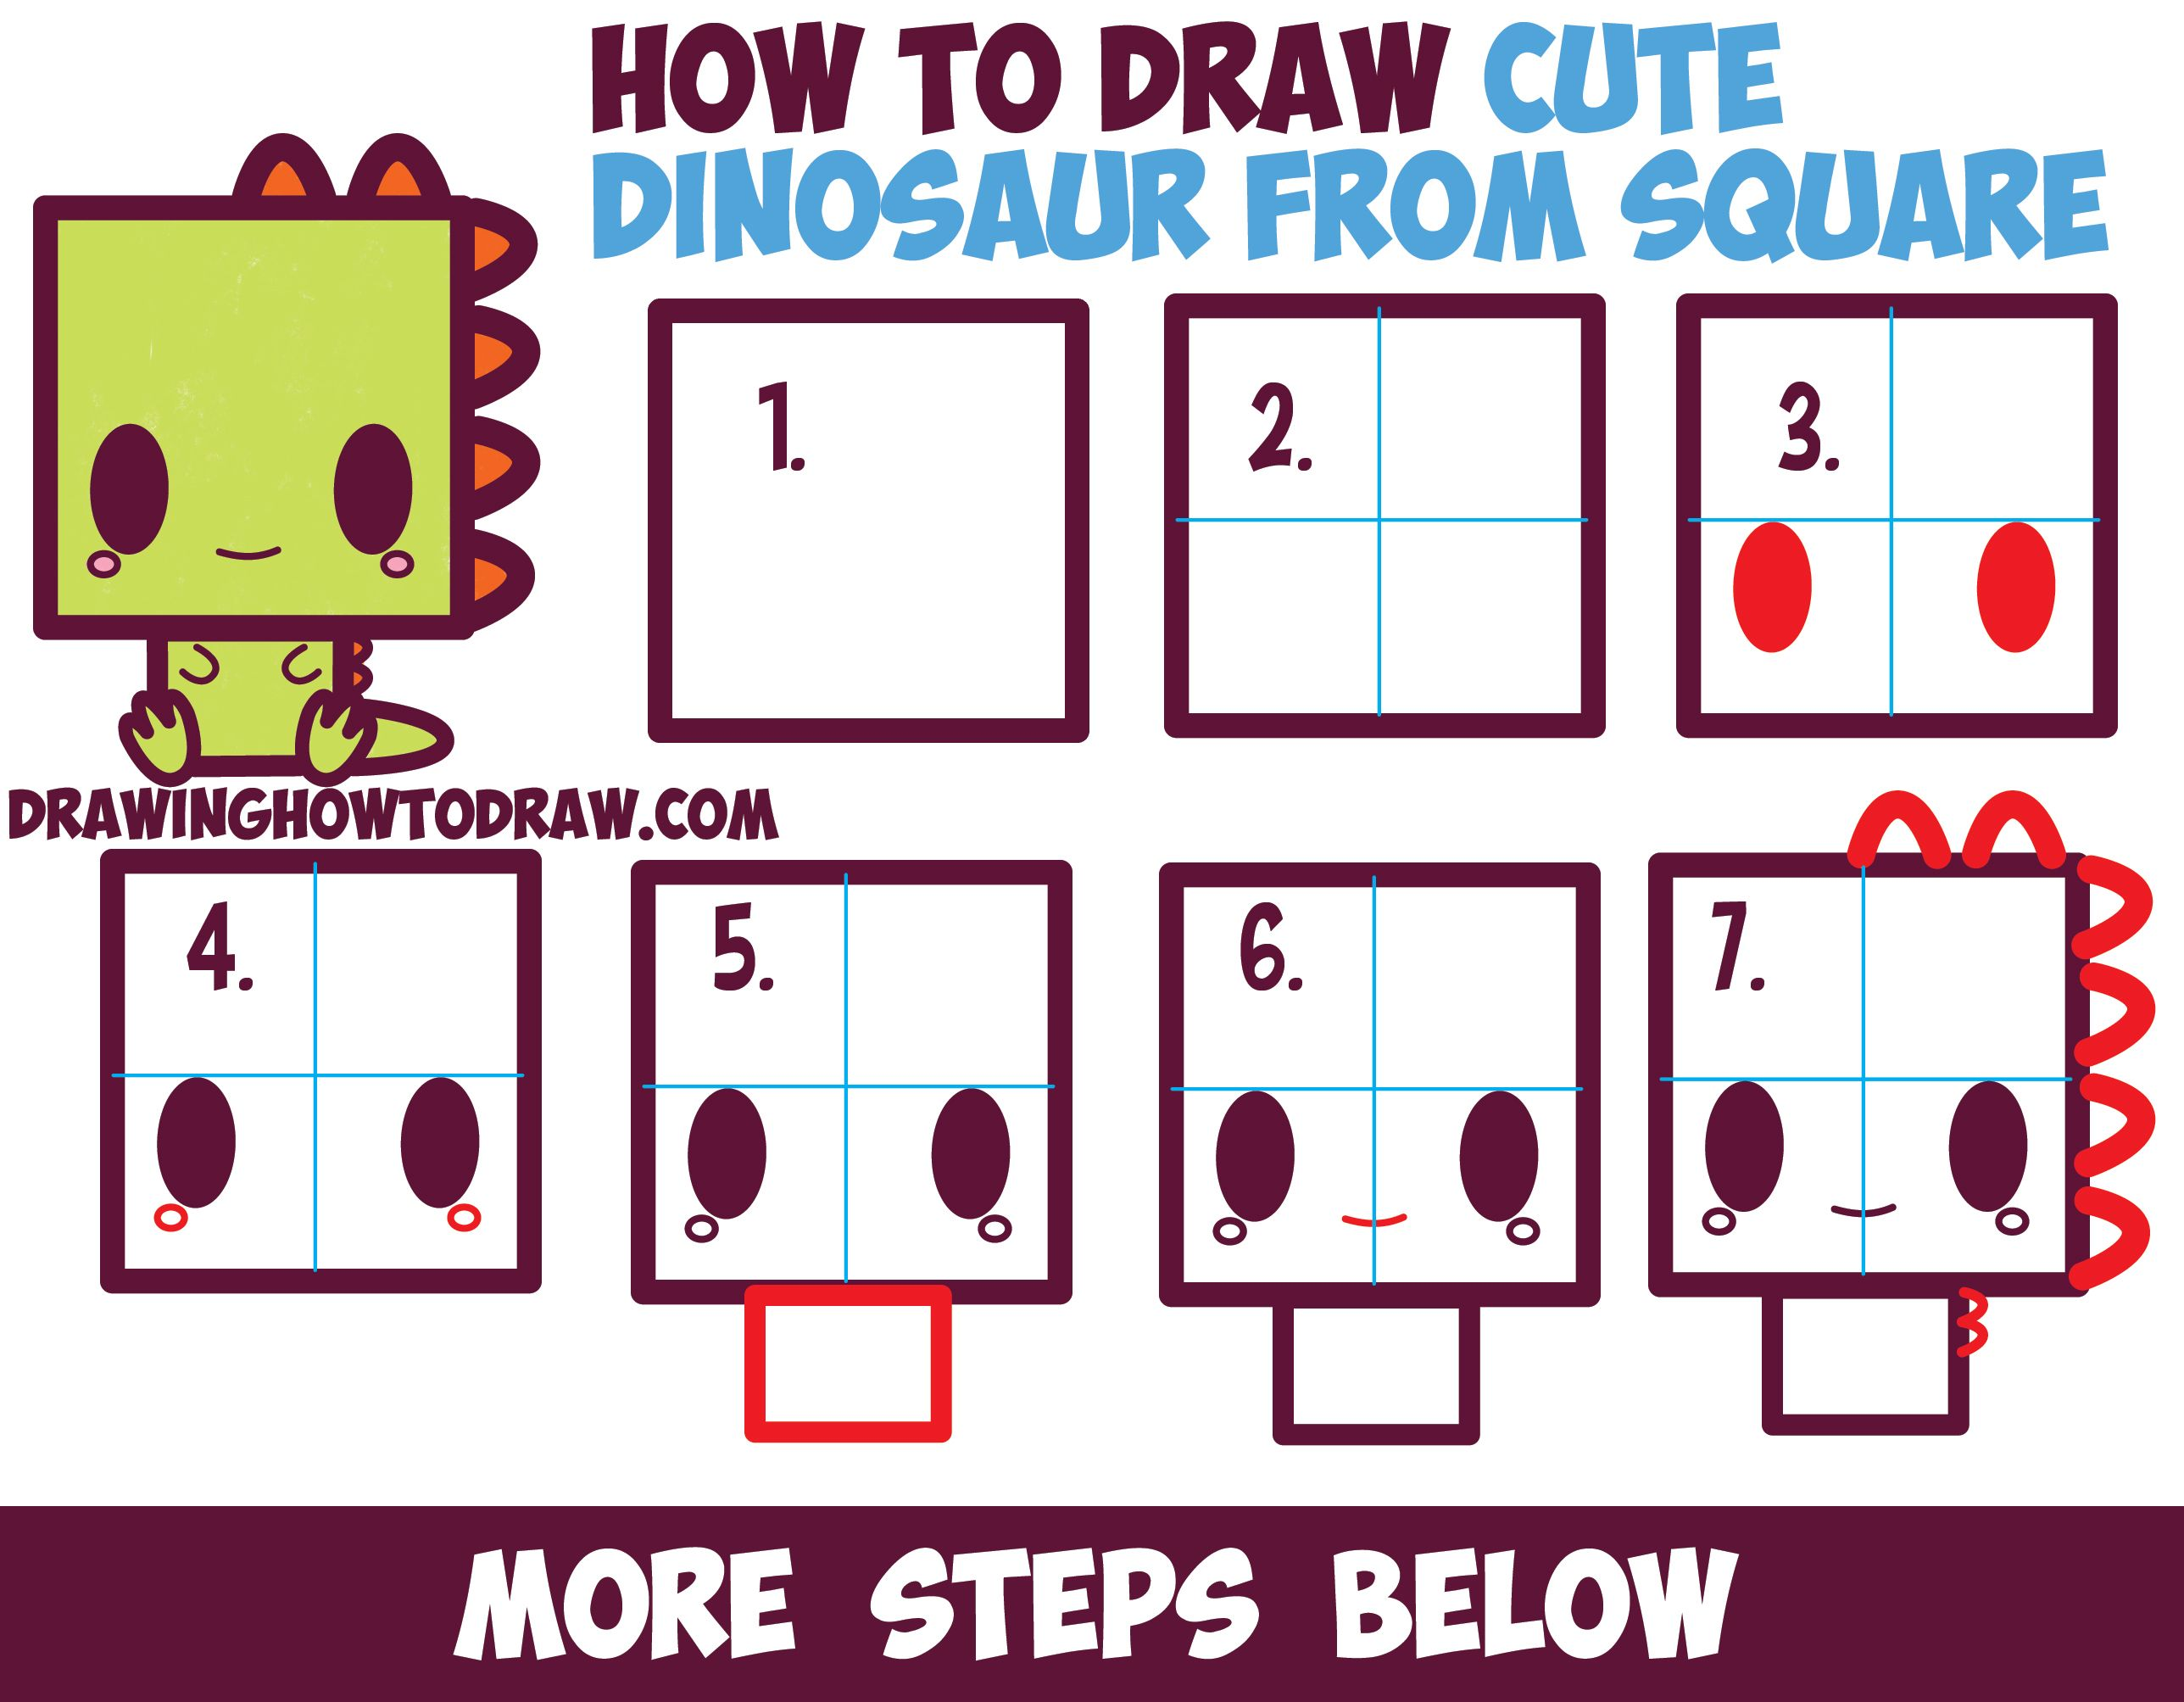 How To Draw Cute Kawaii Cartoon Baby Dinosaur From Squares With Easy Step By Step Drawing Tutorial For Kids How To Draw Step By Step Drawing Tutorials Cute